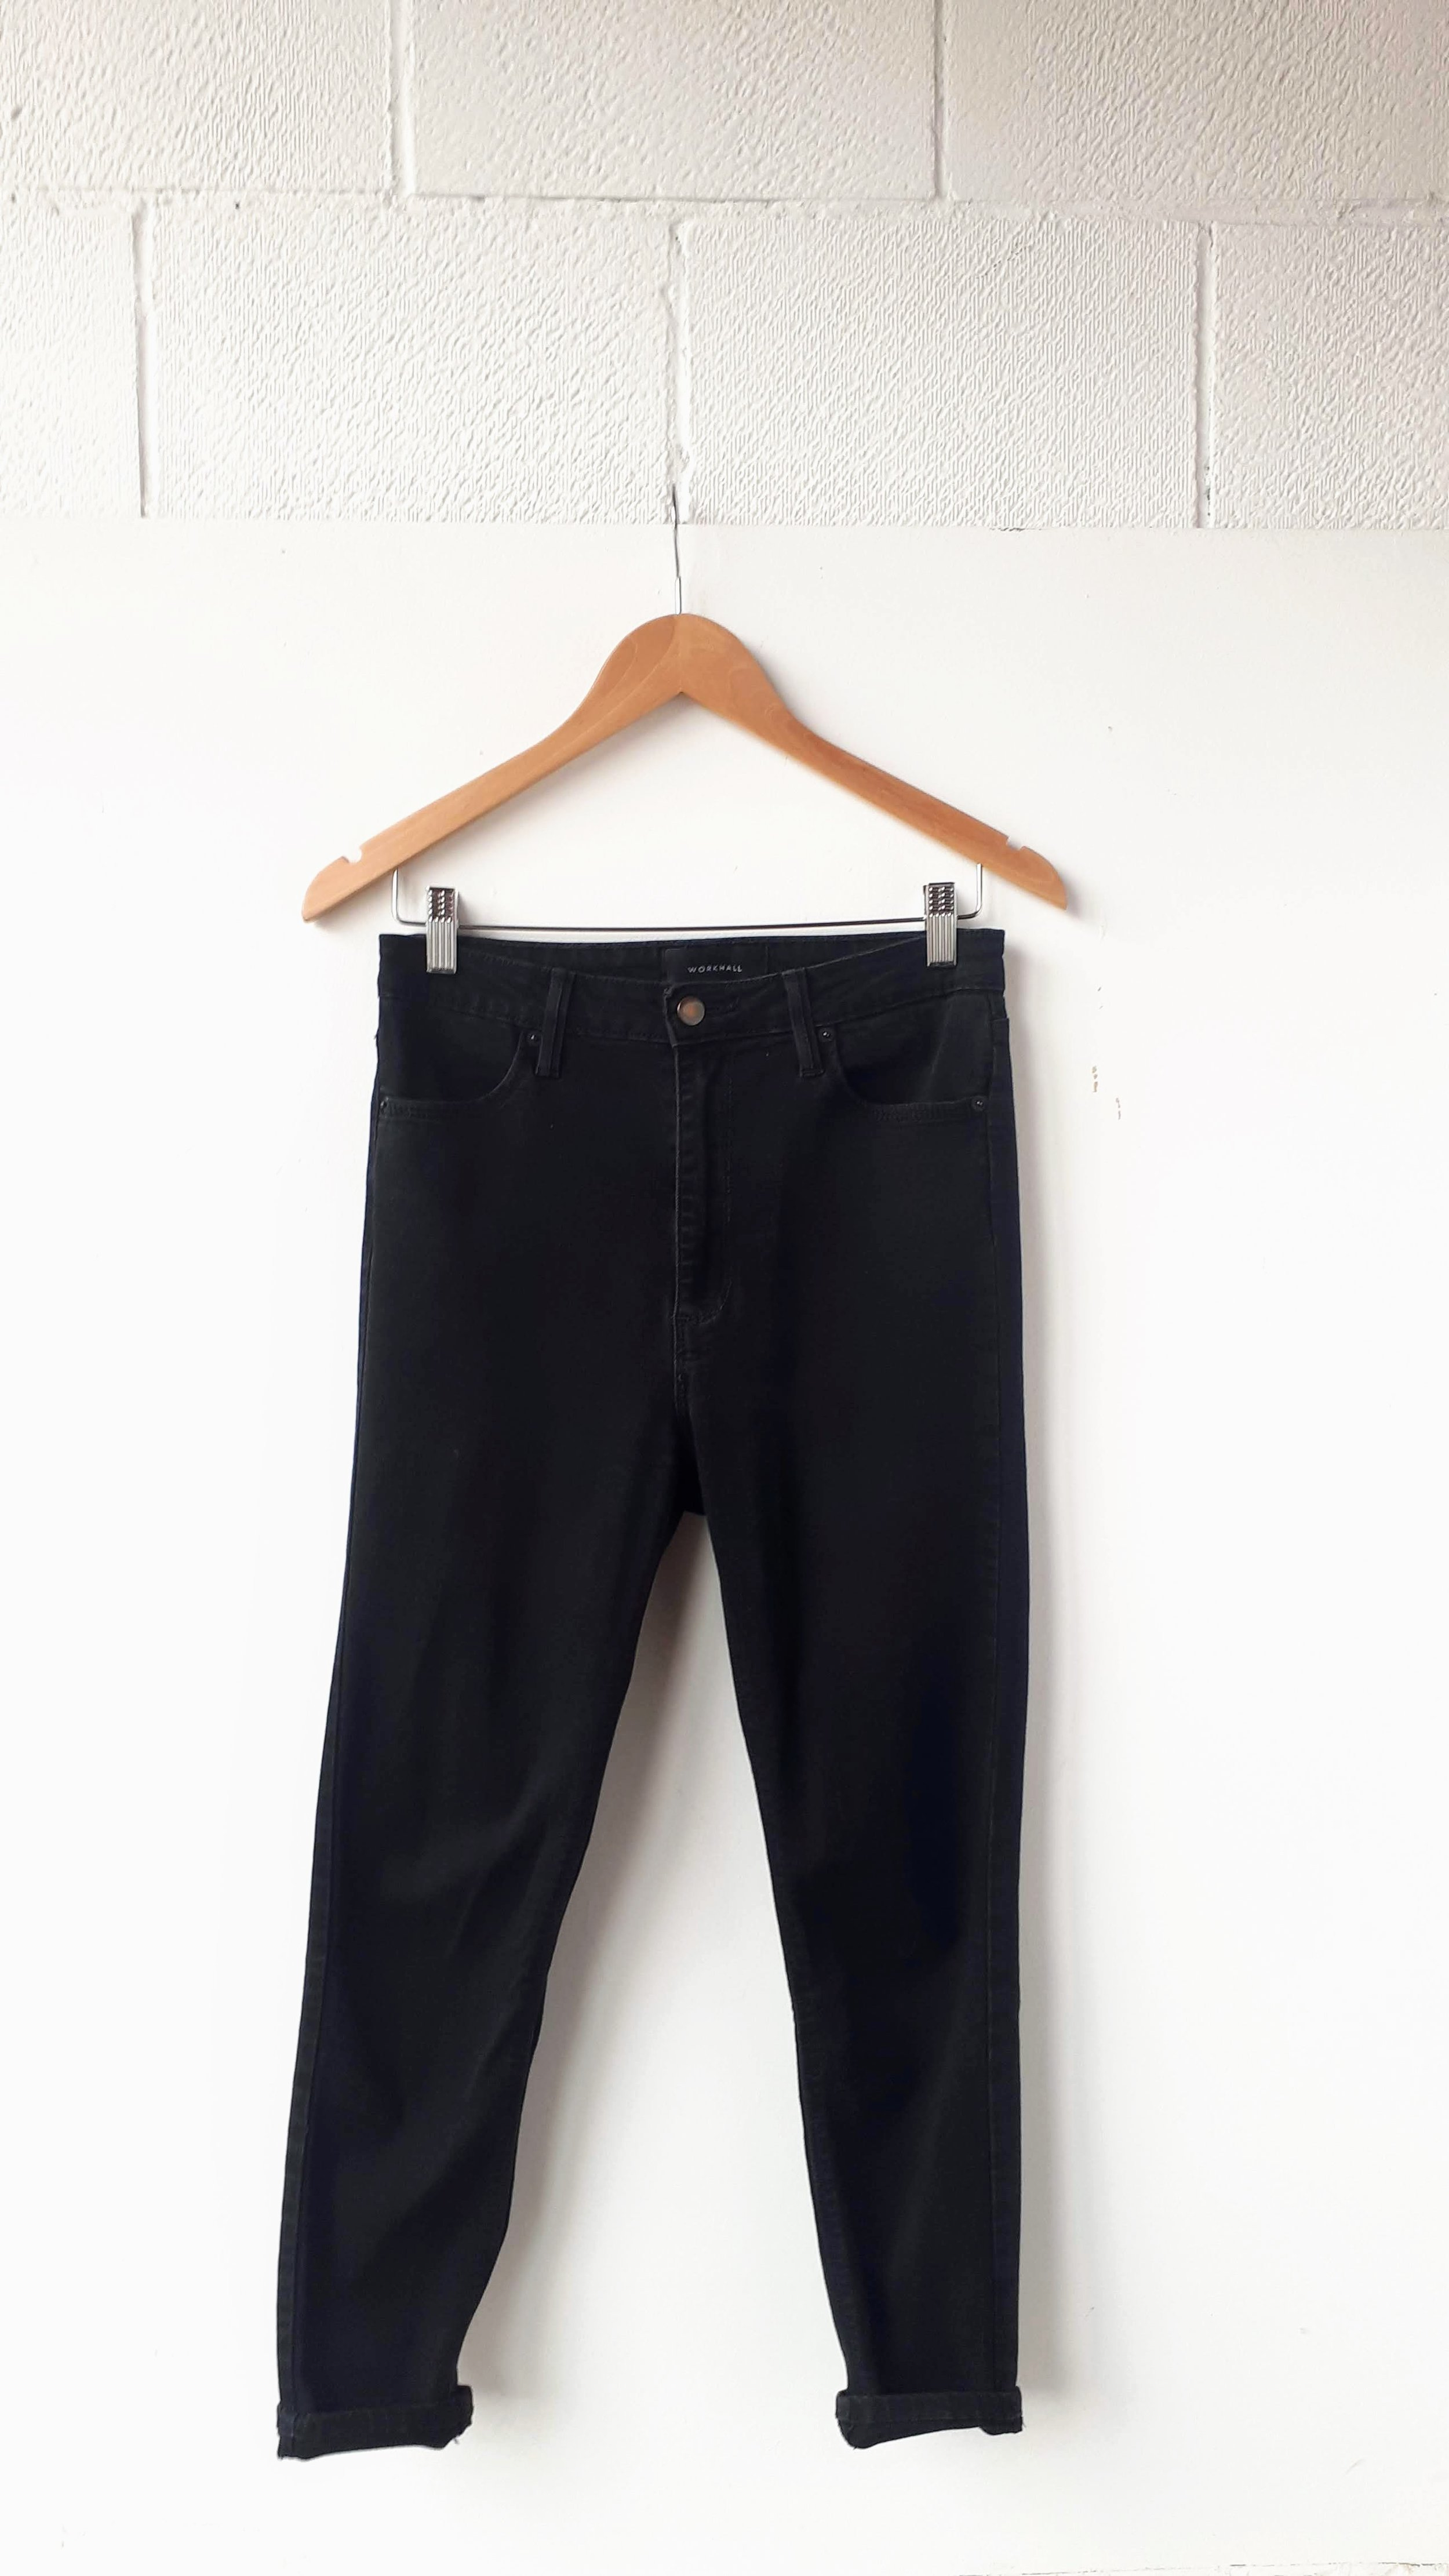 Workhall jeans; Size 29, $32